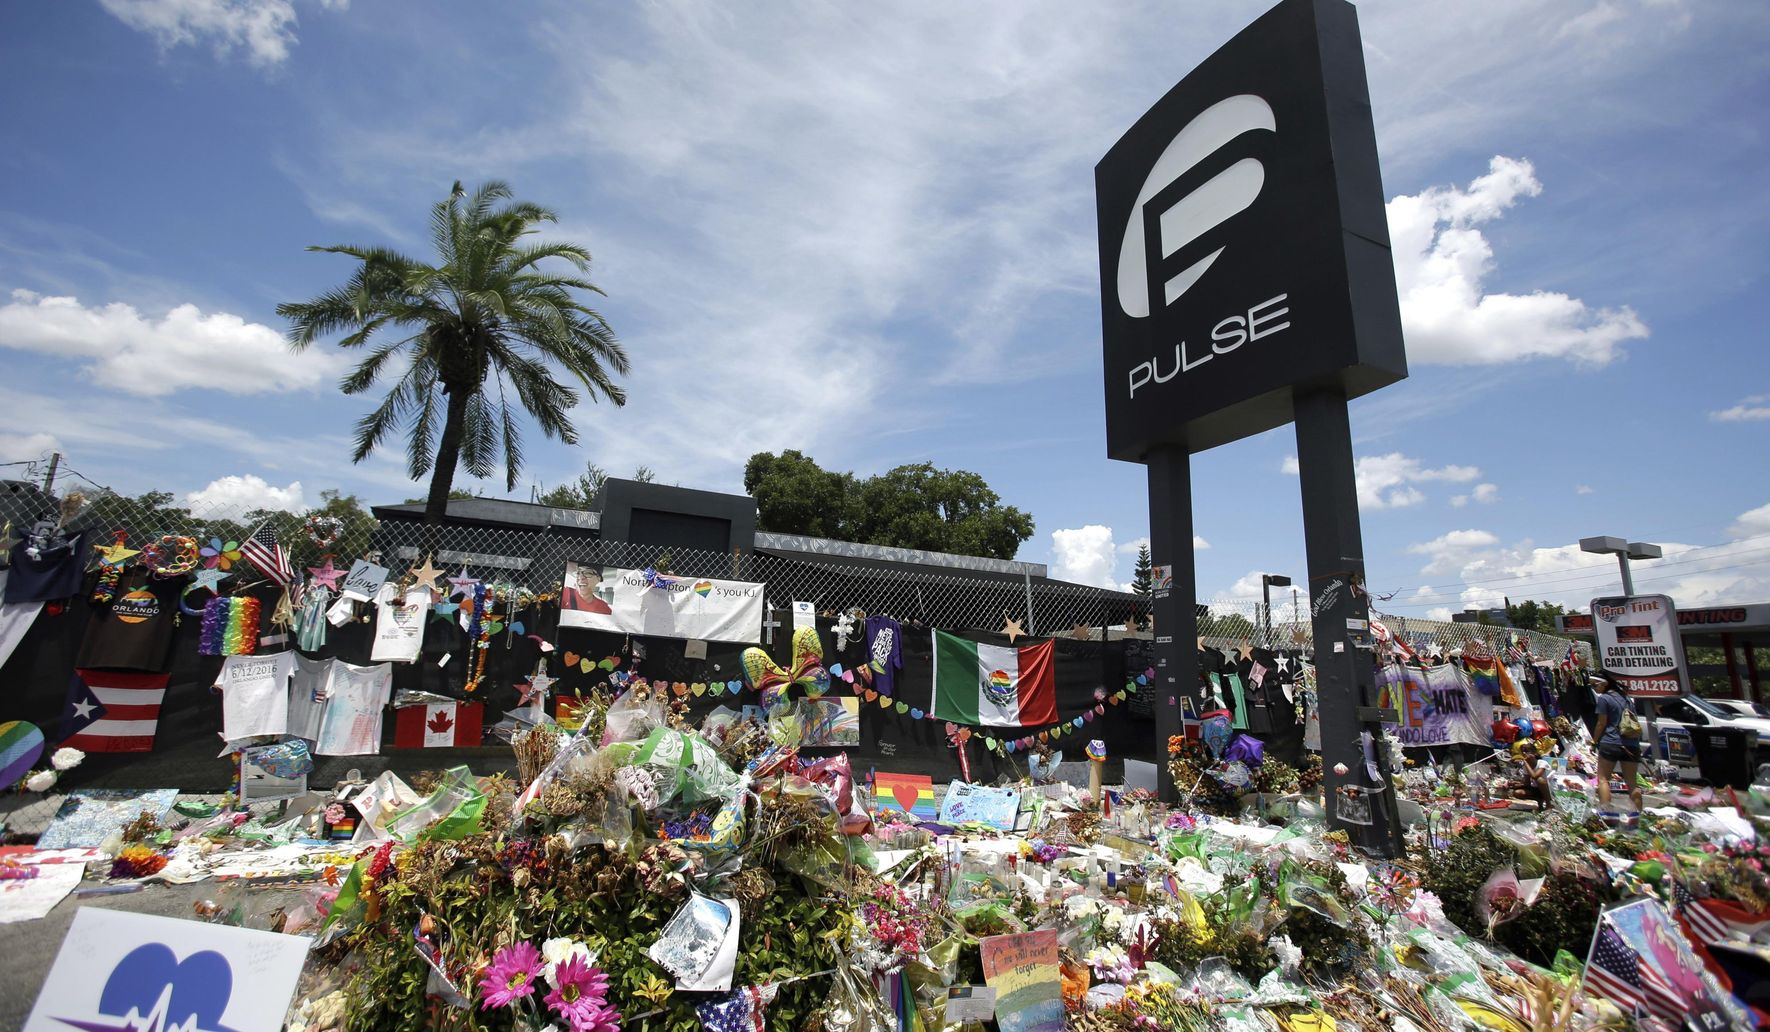 Pulse shooting survivors host rally against gay 'lifestyle'